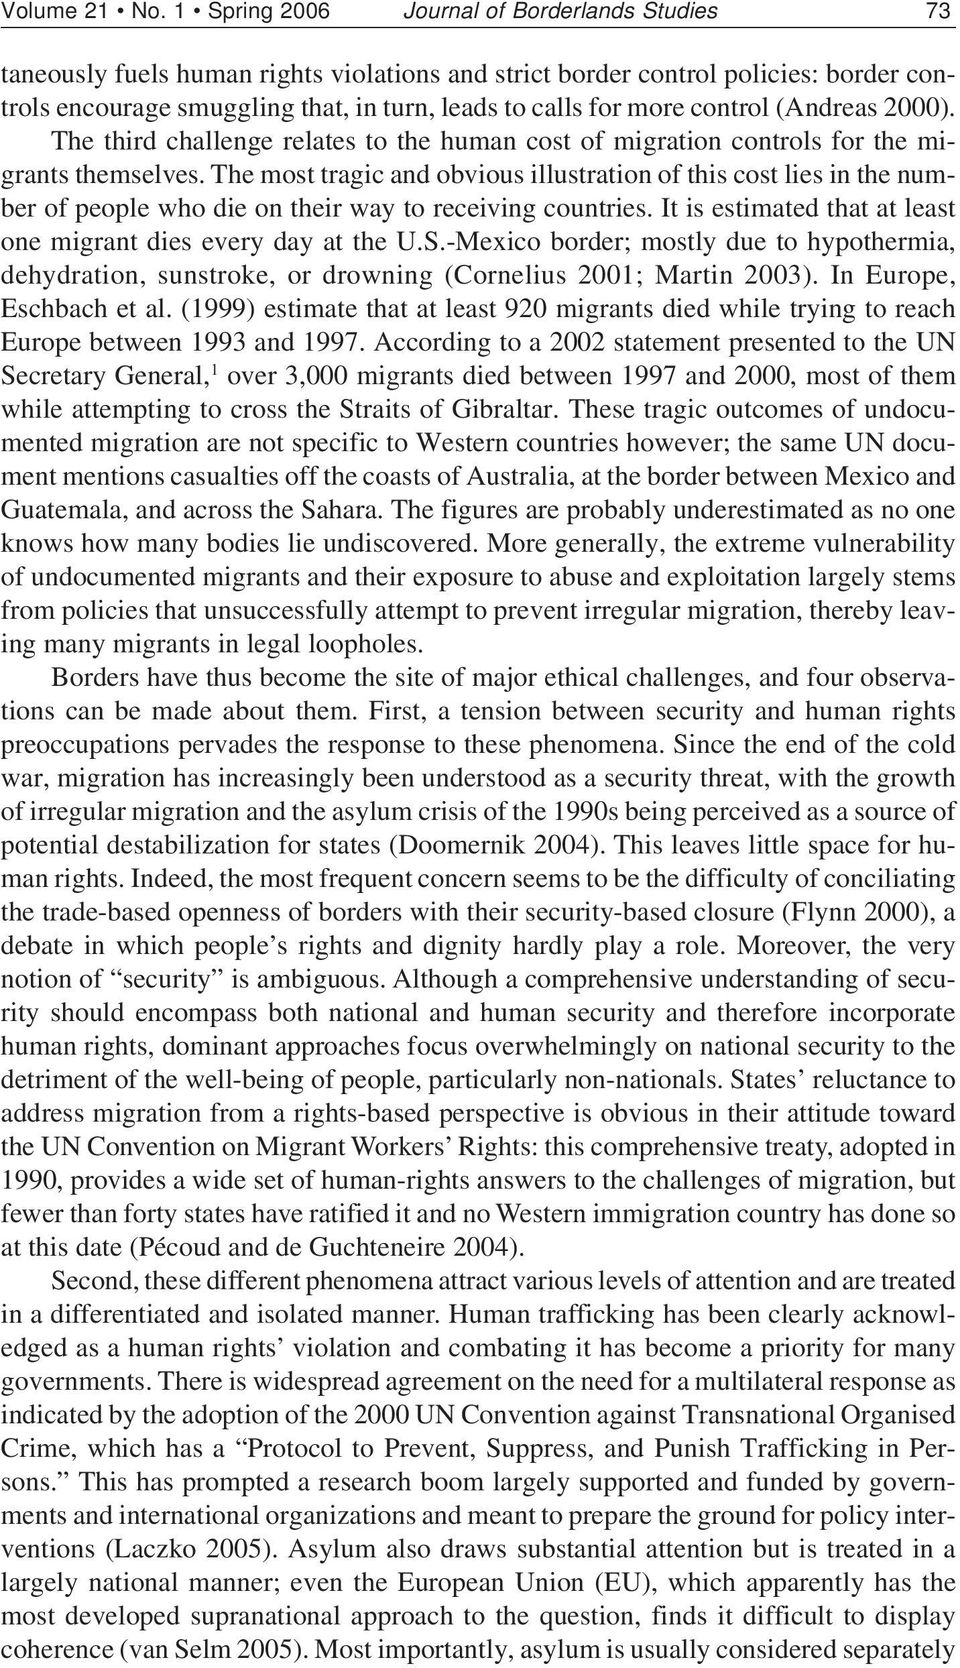 control (Andreas 2000). The third challenge relates to the human cost of migration controls for the migrants themselves.